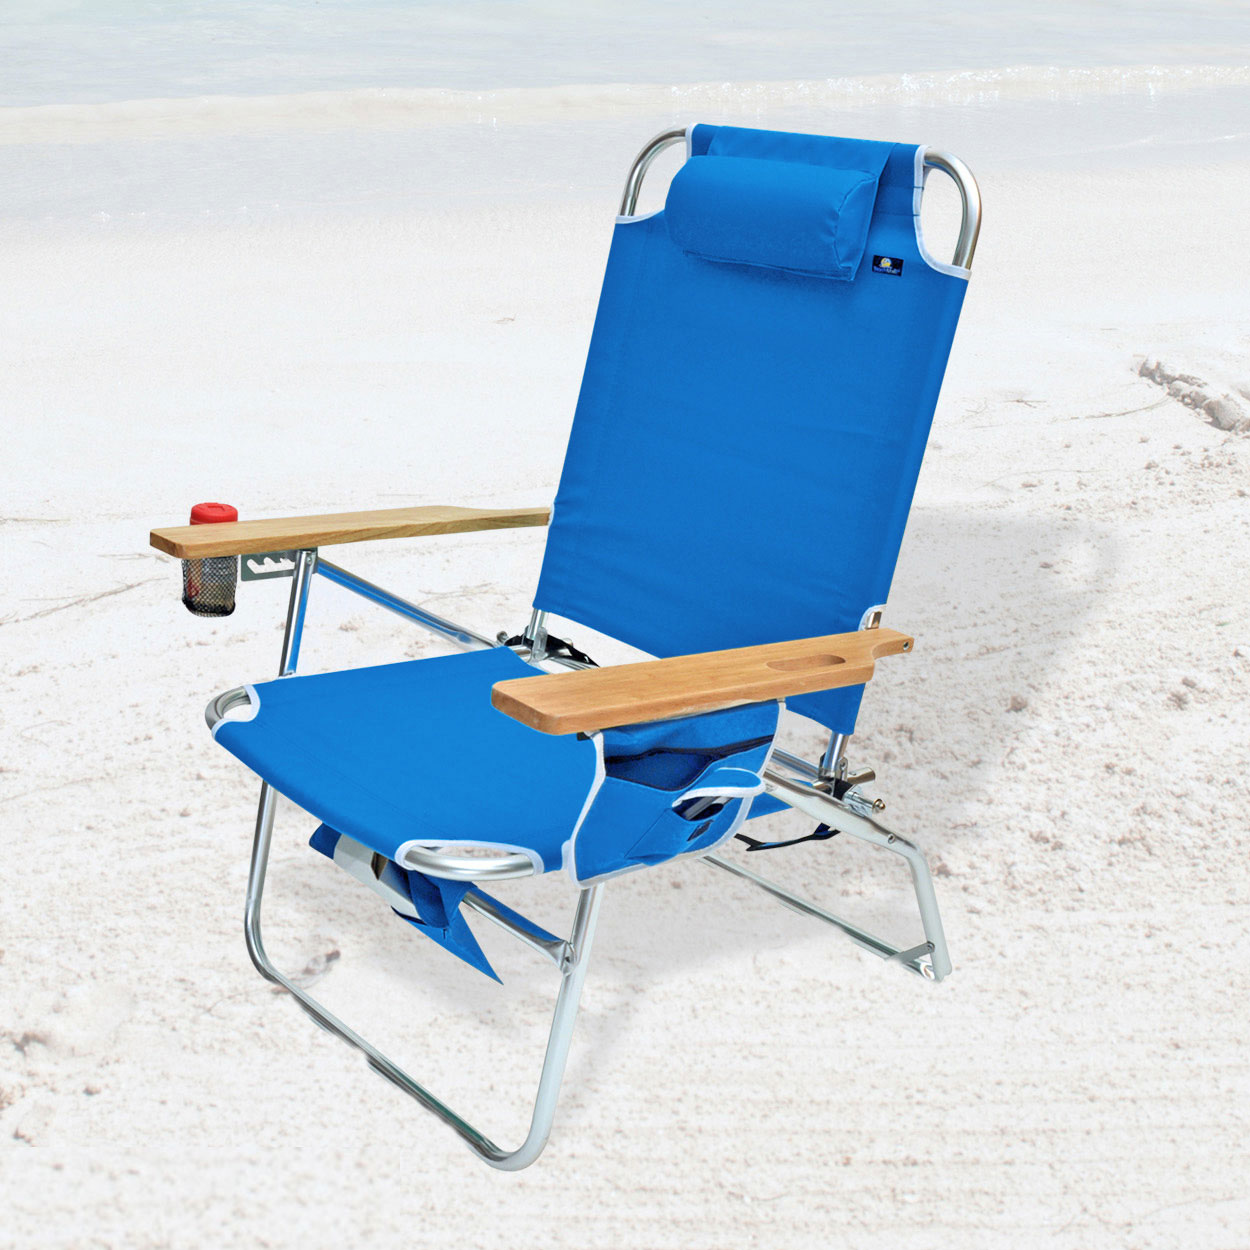 Ostrich 3 In 1 Beach Chair Big Jumbo Heavy Duty 500 Lbs Xl Aluminum Beach Chair For